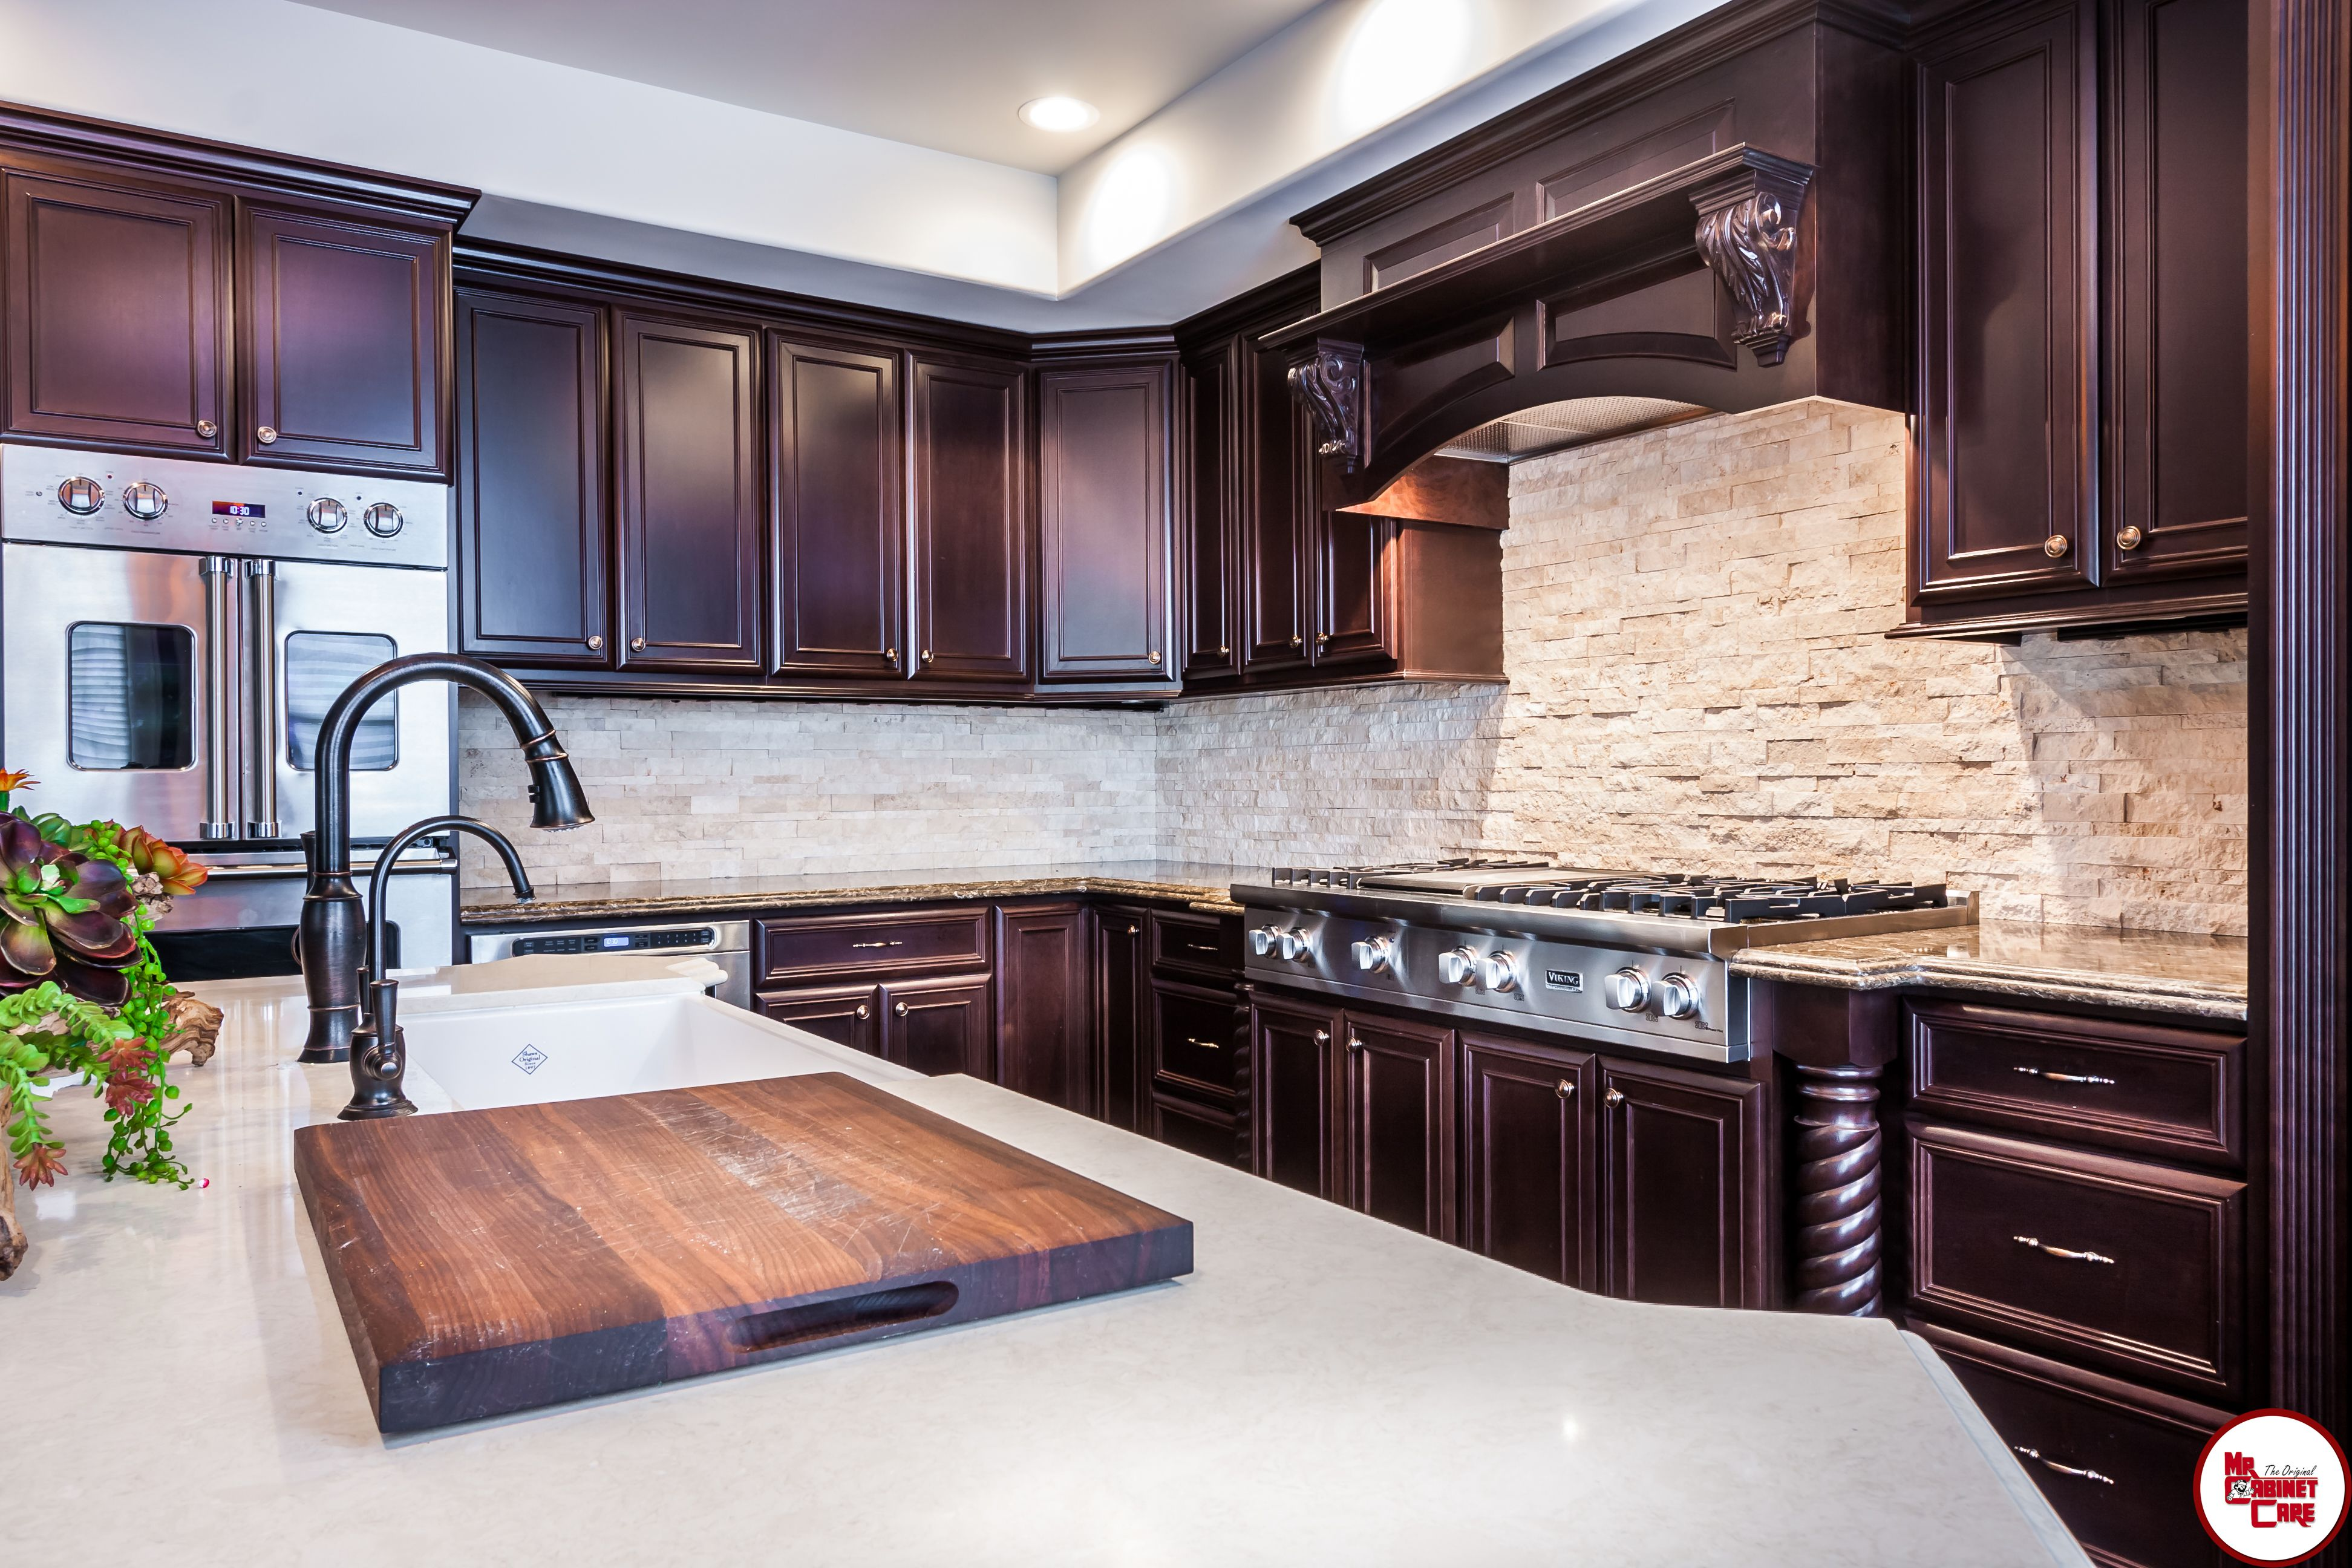 Cabinet Care Offers Cabinet Refacing, Kitchen Remodeling U0026 Home Design  Services To Homeowners In Orange County, Los Angeles, Riverside U0026 Anaheim.